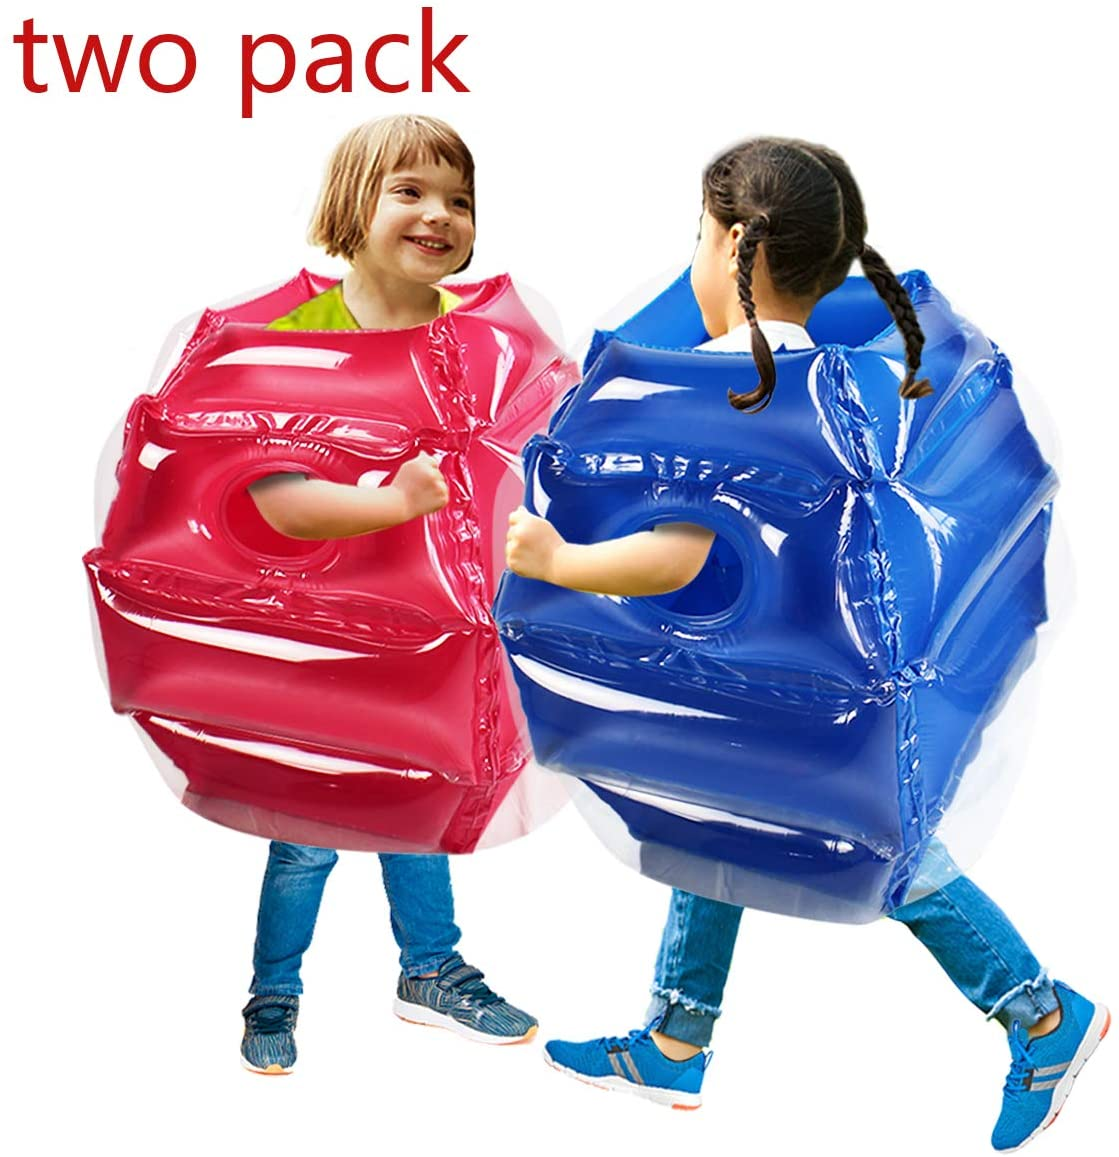 SUNSHINEMALL 2PC Bumper Balls, Inflatable Body Bubble Ball Sumo Bumper Bopper Toys for Kids 25.2 - Heavy Duty Durable PVC Vinyl Suits for Grassland or Other Outdoors Play (2PC Blue+Pink)